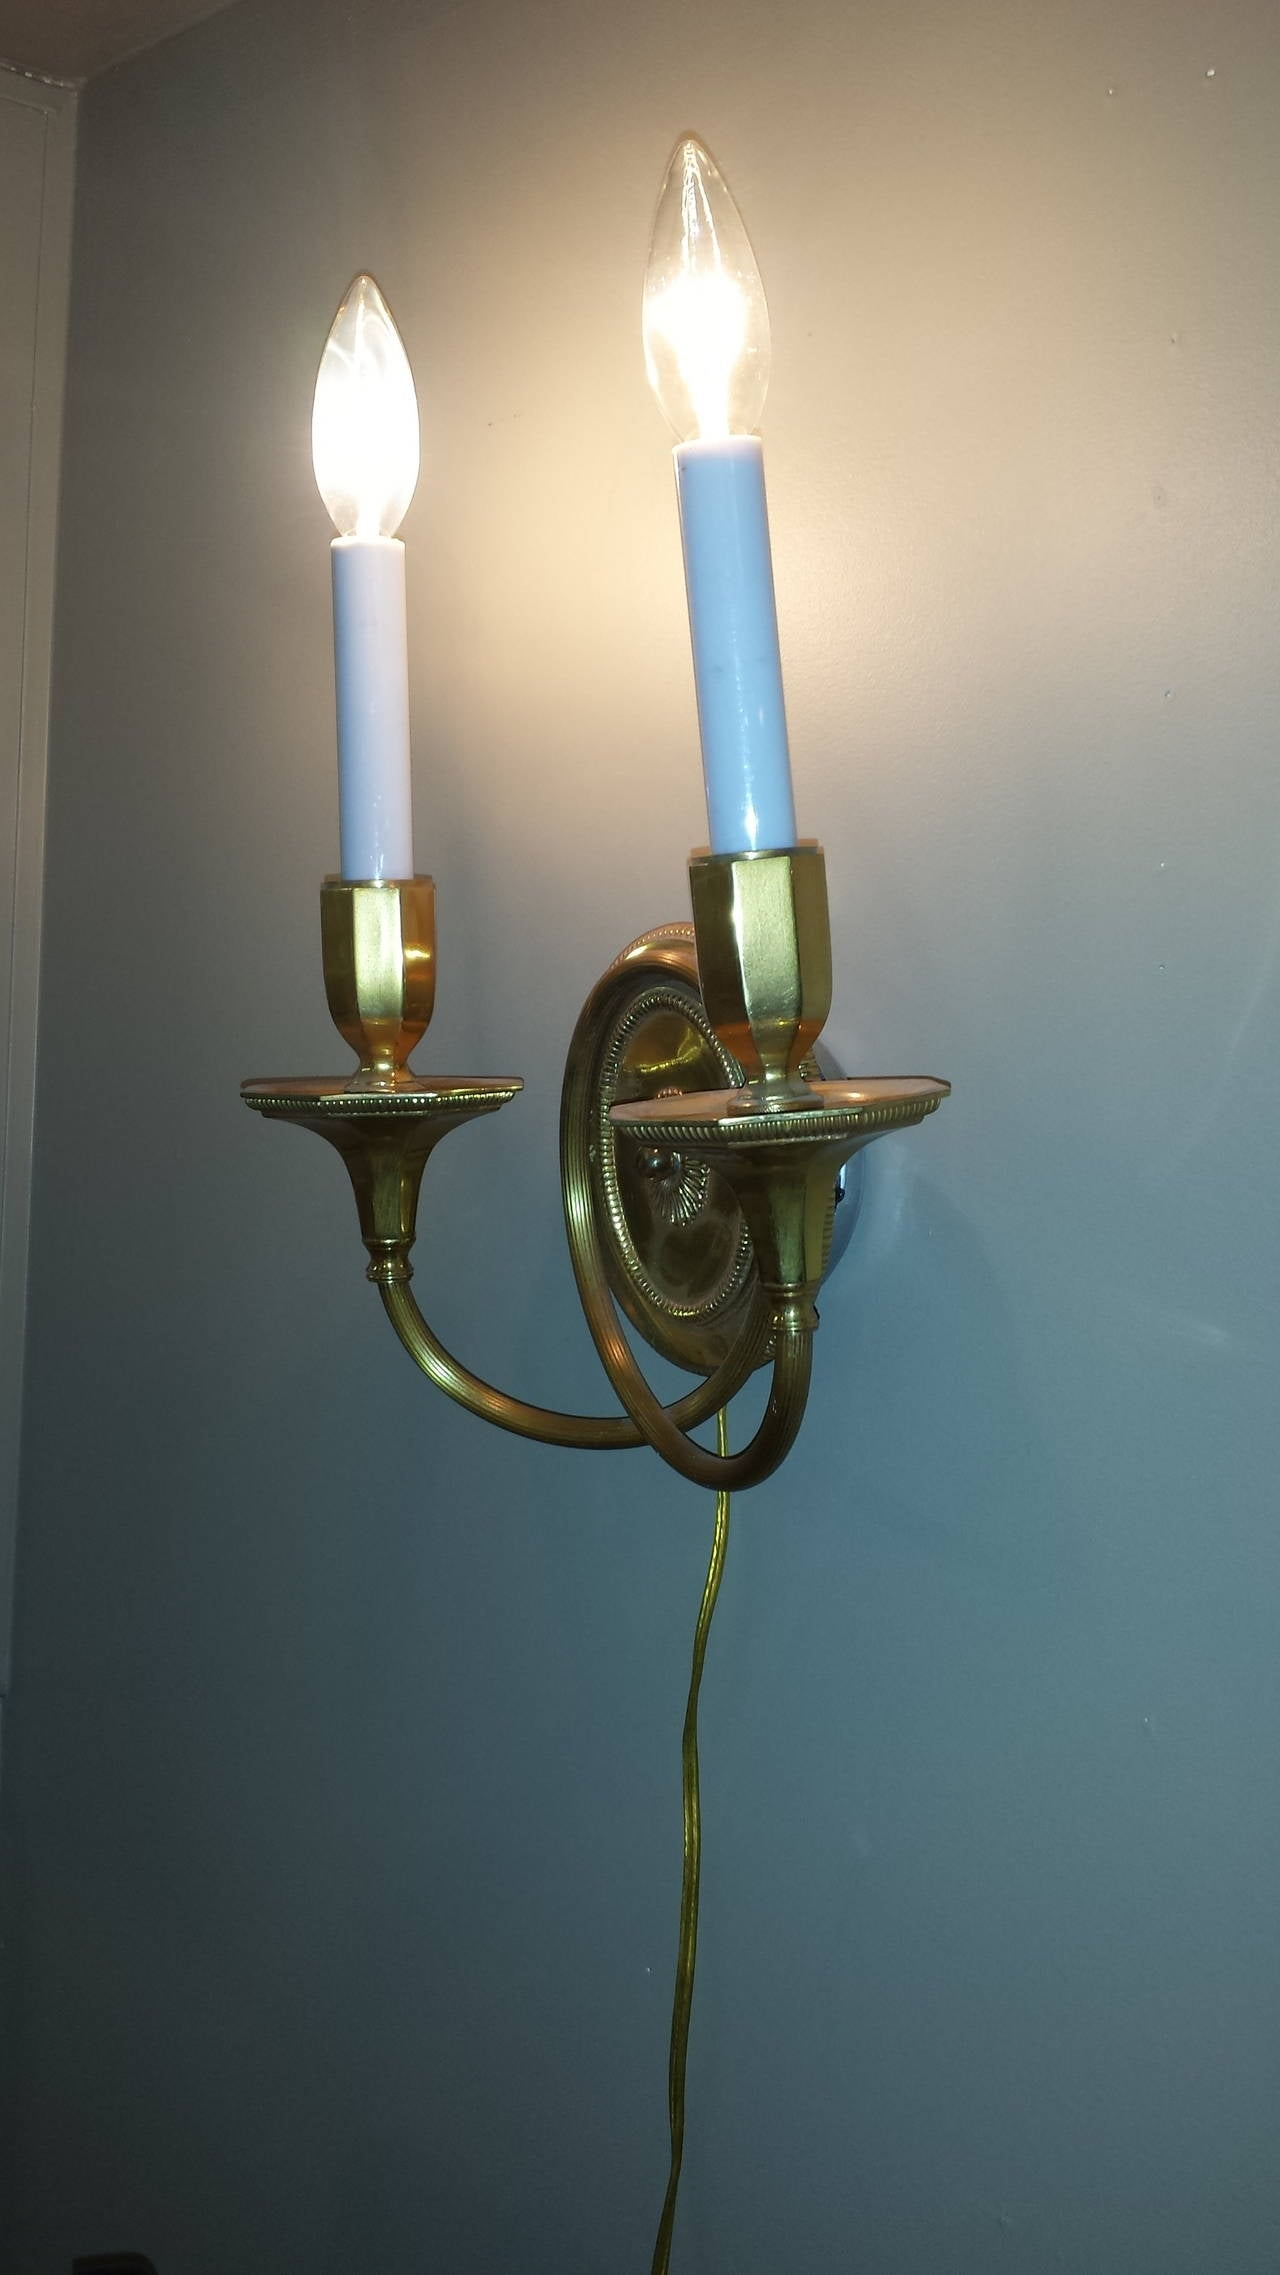 Solid Brass Wall Sconces : Solid Brass, Double-Arm Wall Sconces For Sale at 1stdibs